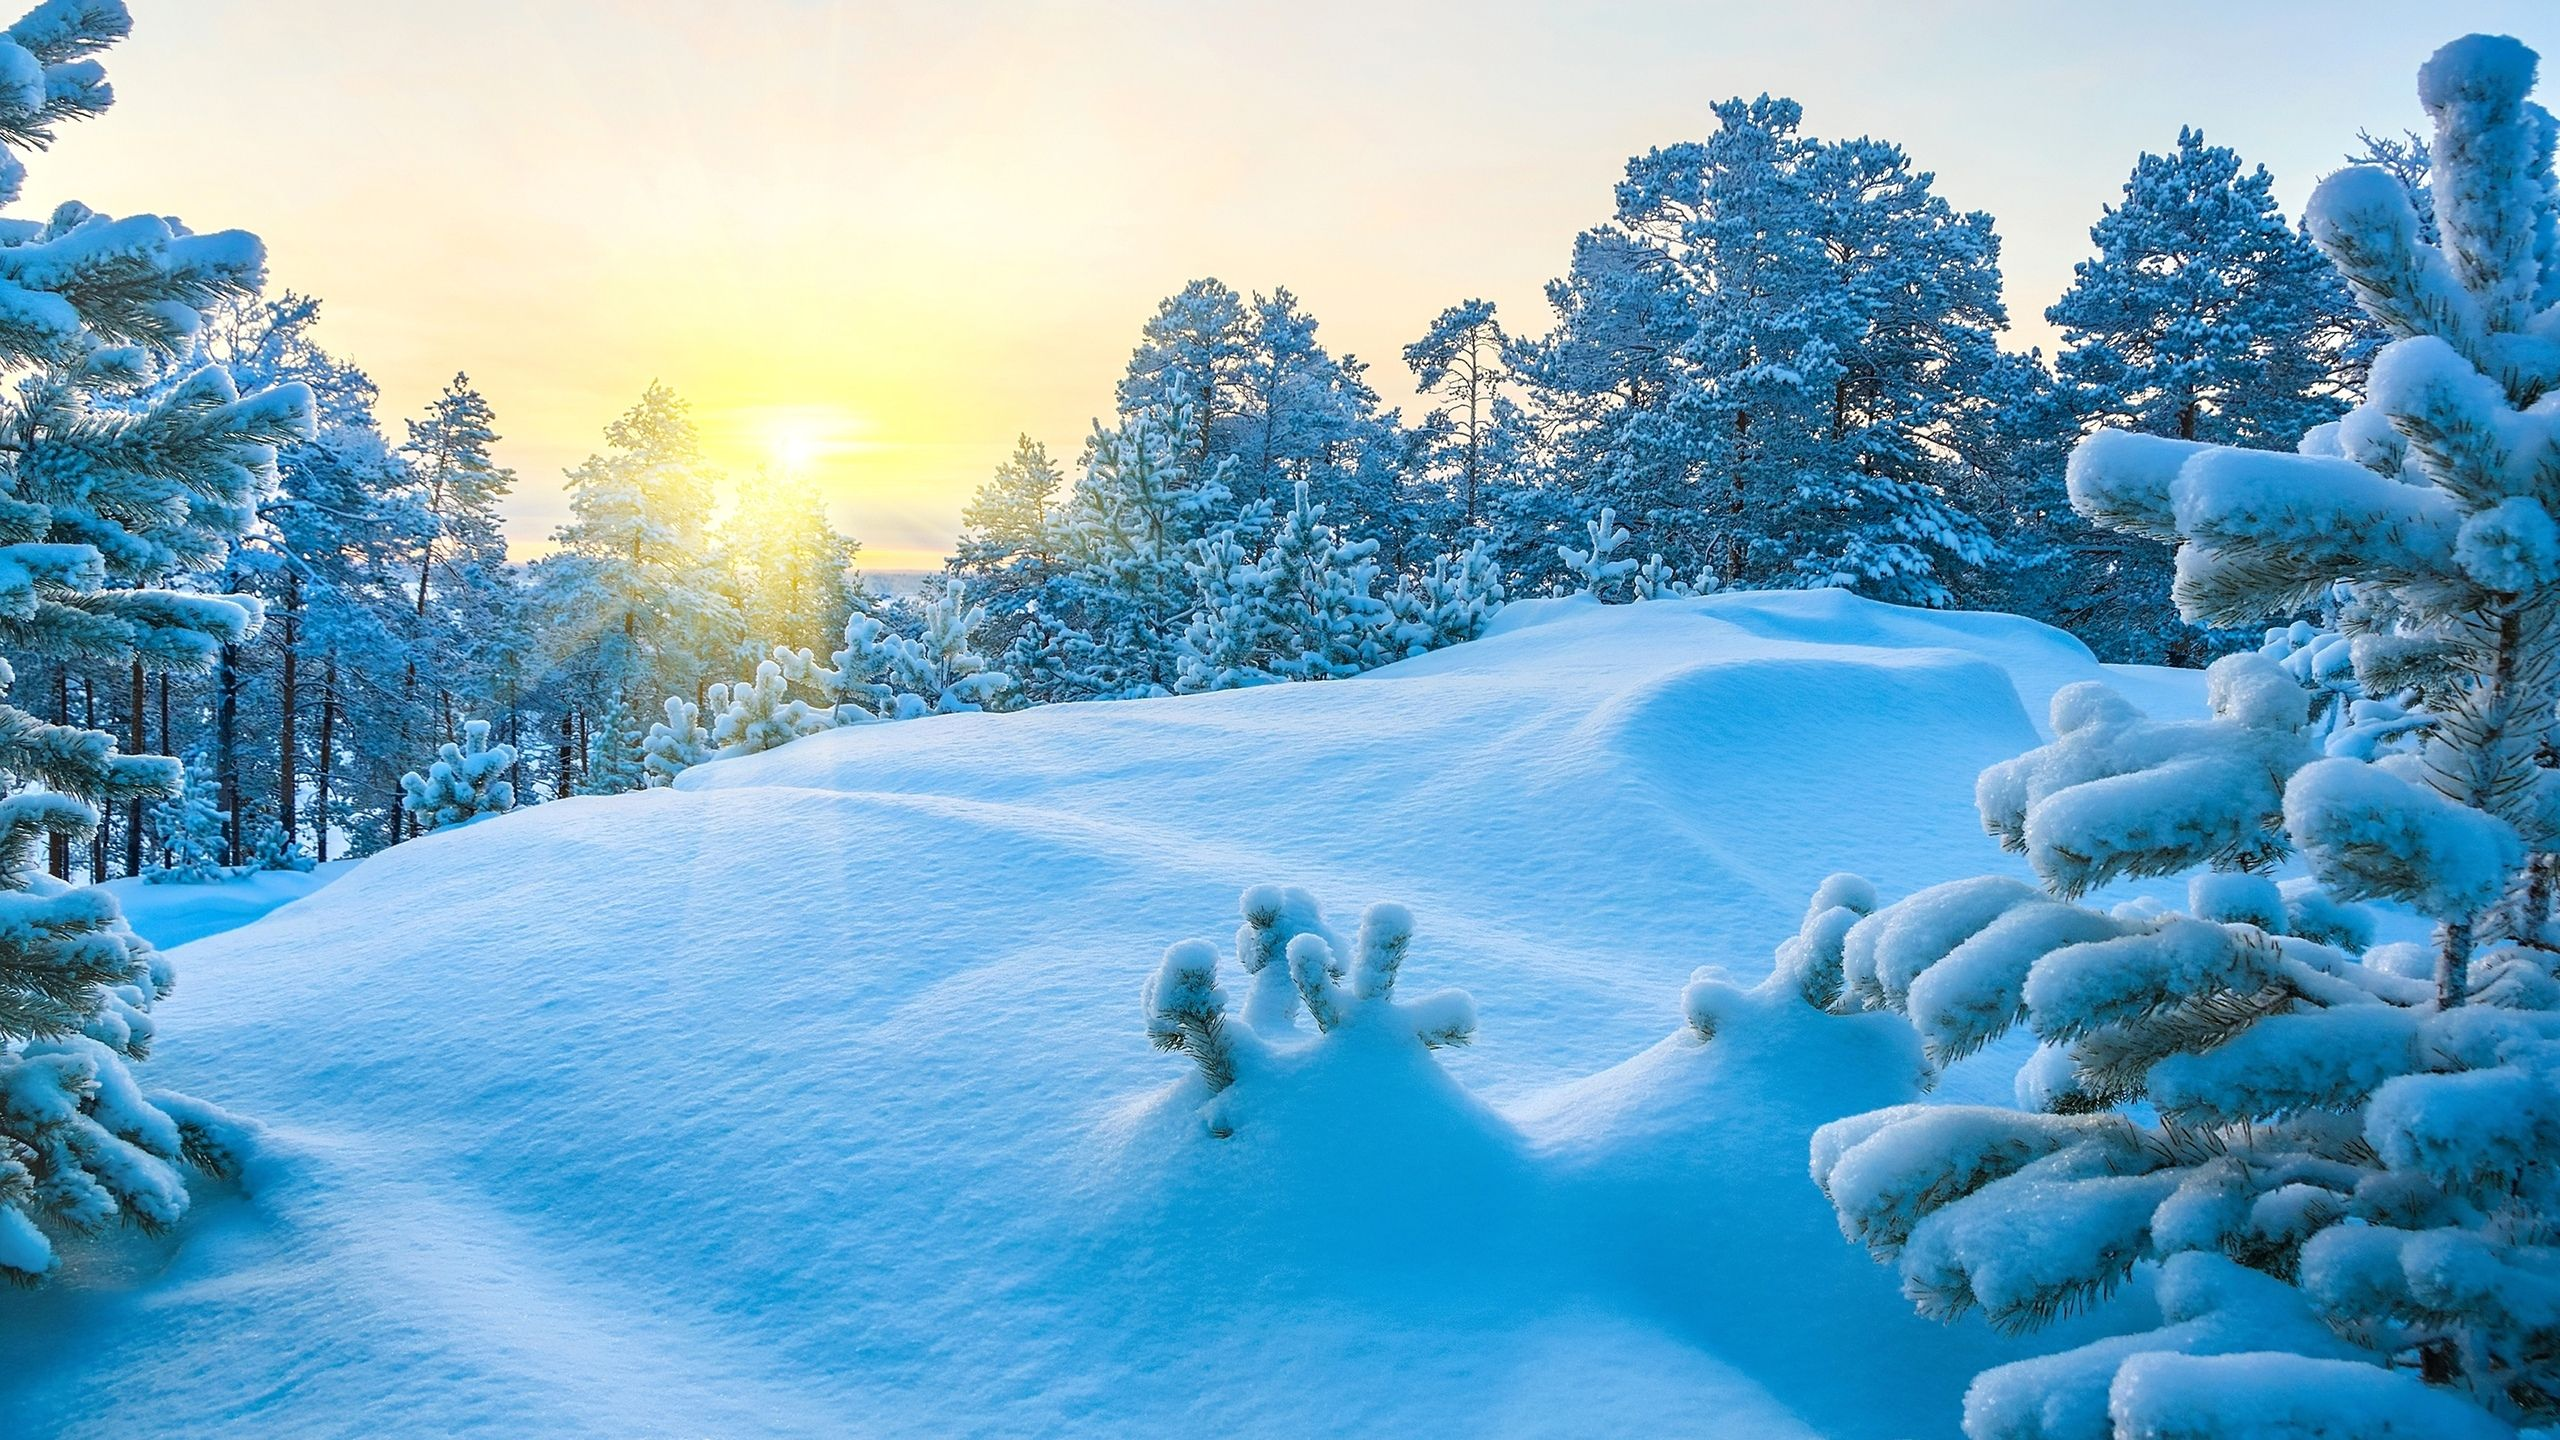 Winter Snow Scenes hd wallpaper 1080p for pc